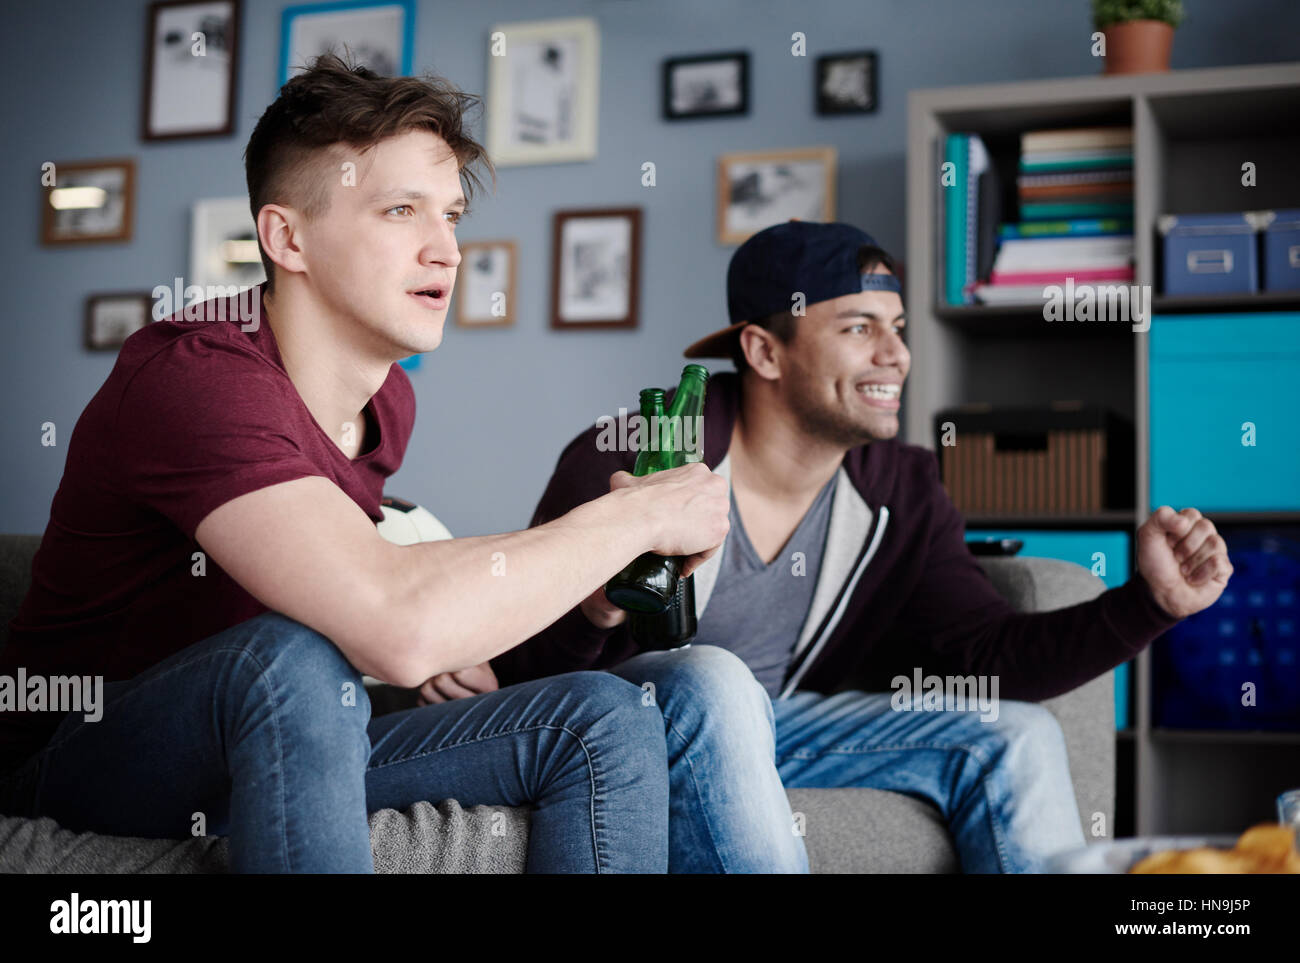 Guys cheering with couple of beers - Stock Image